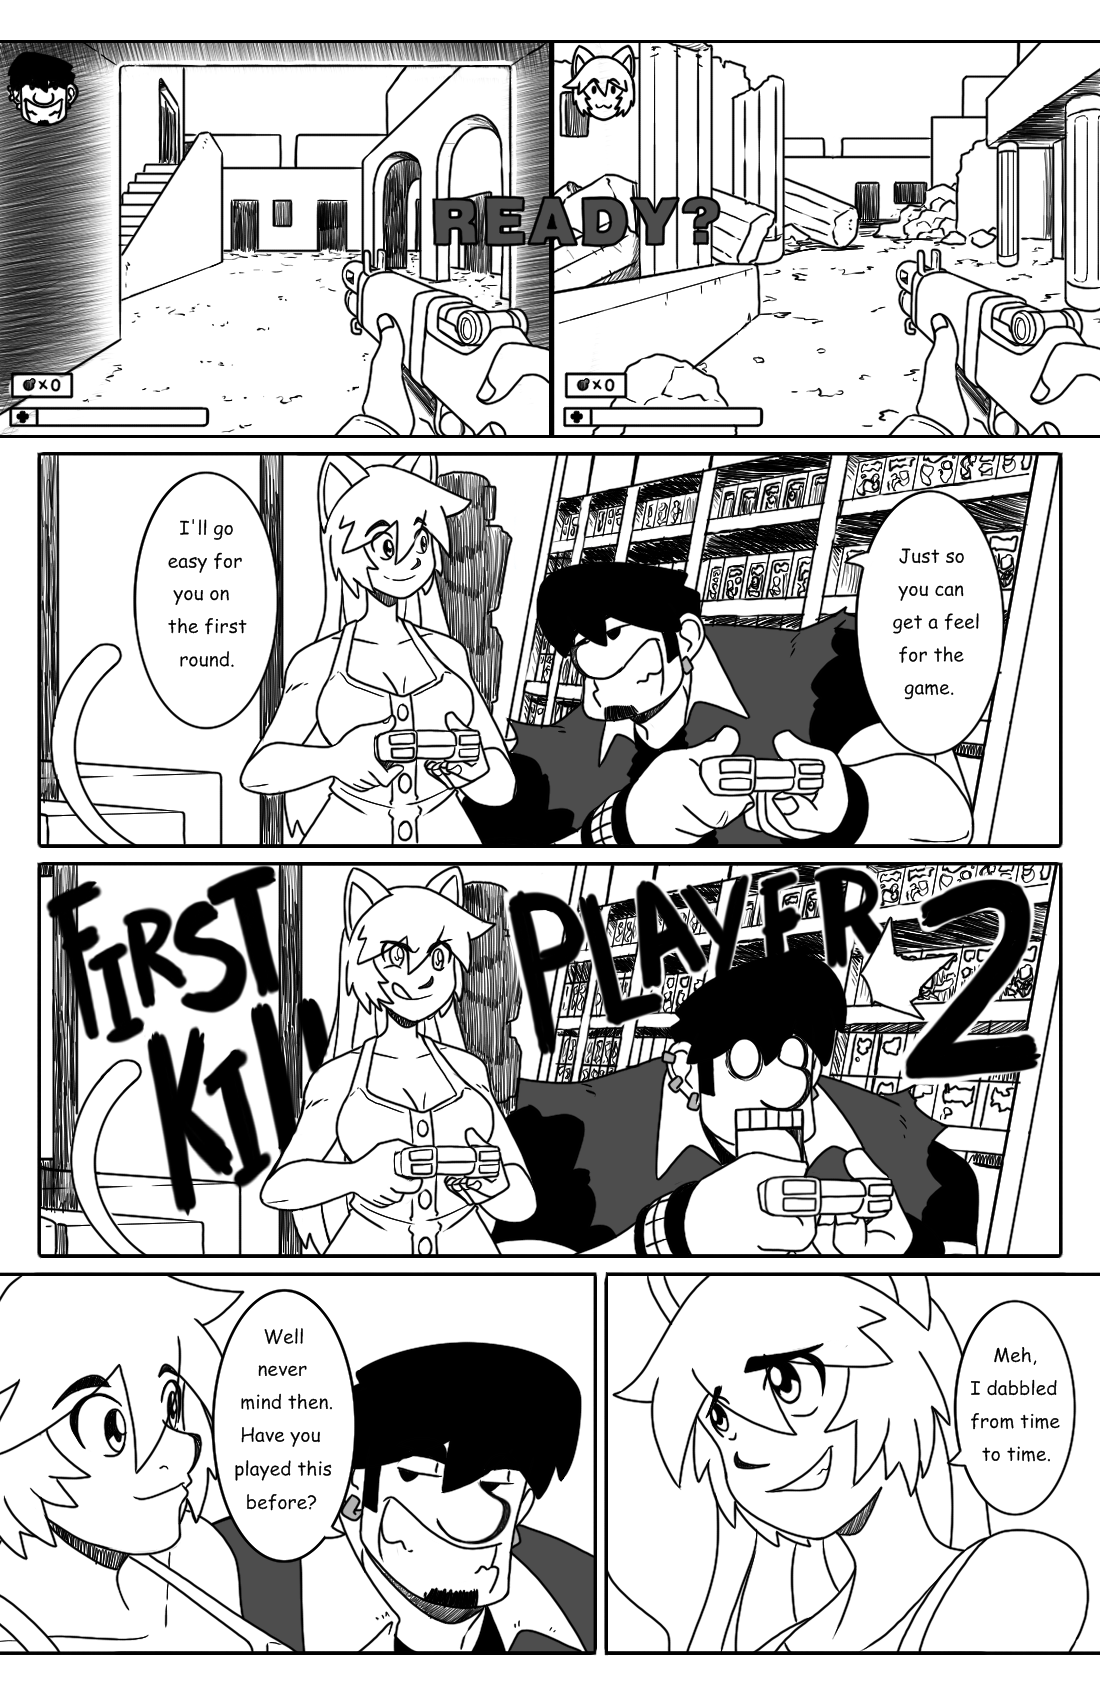 The King Of Games pg.12